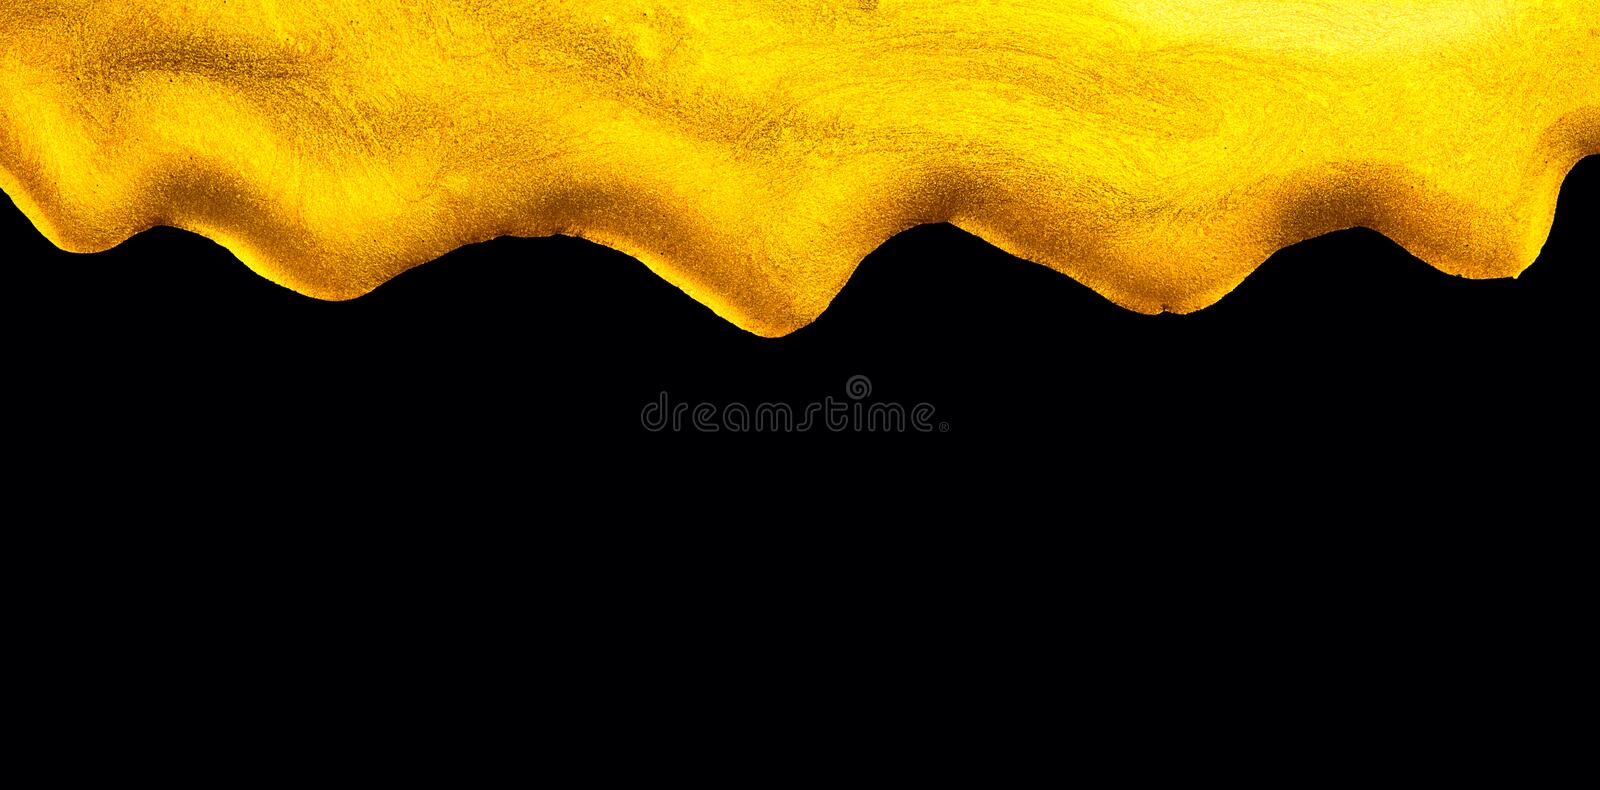 Golden dripping liquid paint texture, isolated on black background. Flowing abstract Gold metallic paint drops close-up stock photography